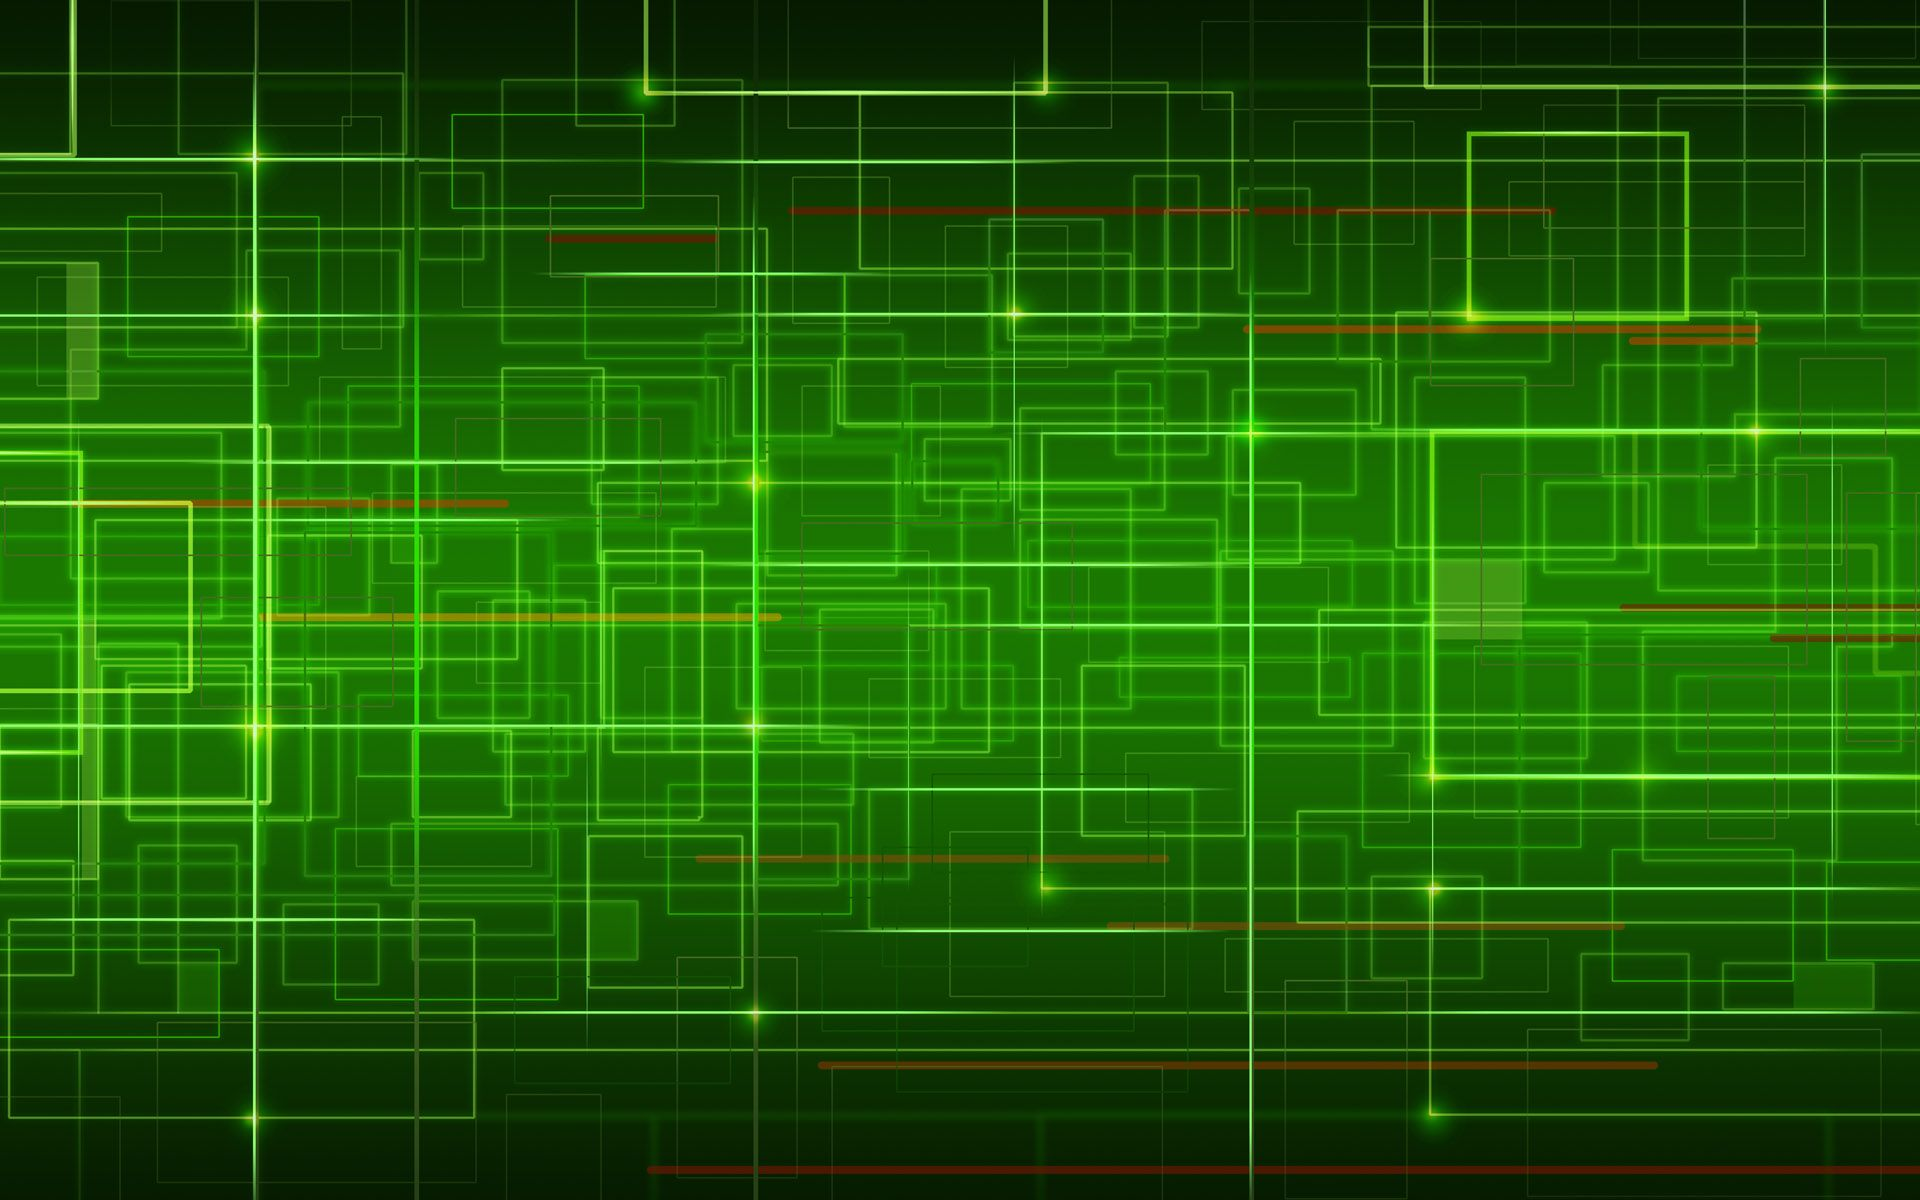 HD Wallpaper and background photos of Green Network Wallpaper for fans of  Green images.